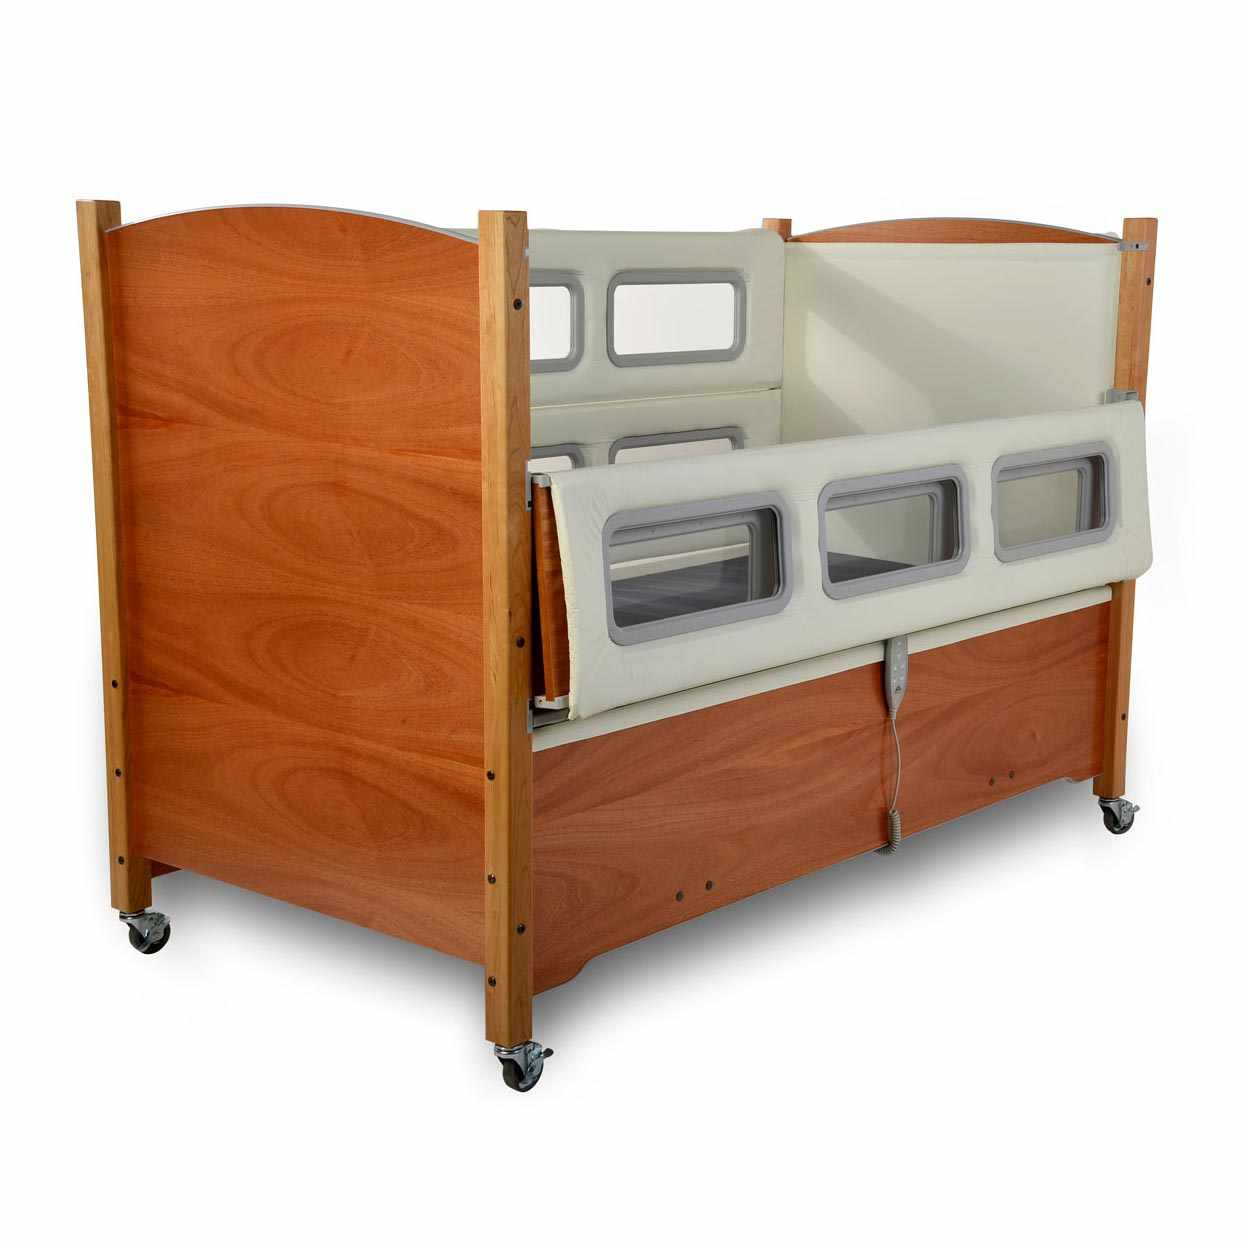 SleepSafer tall bed hi-lo with dual view